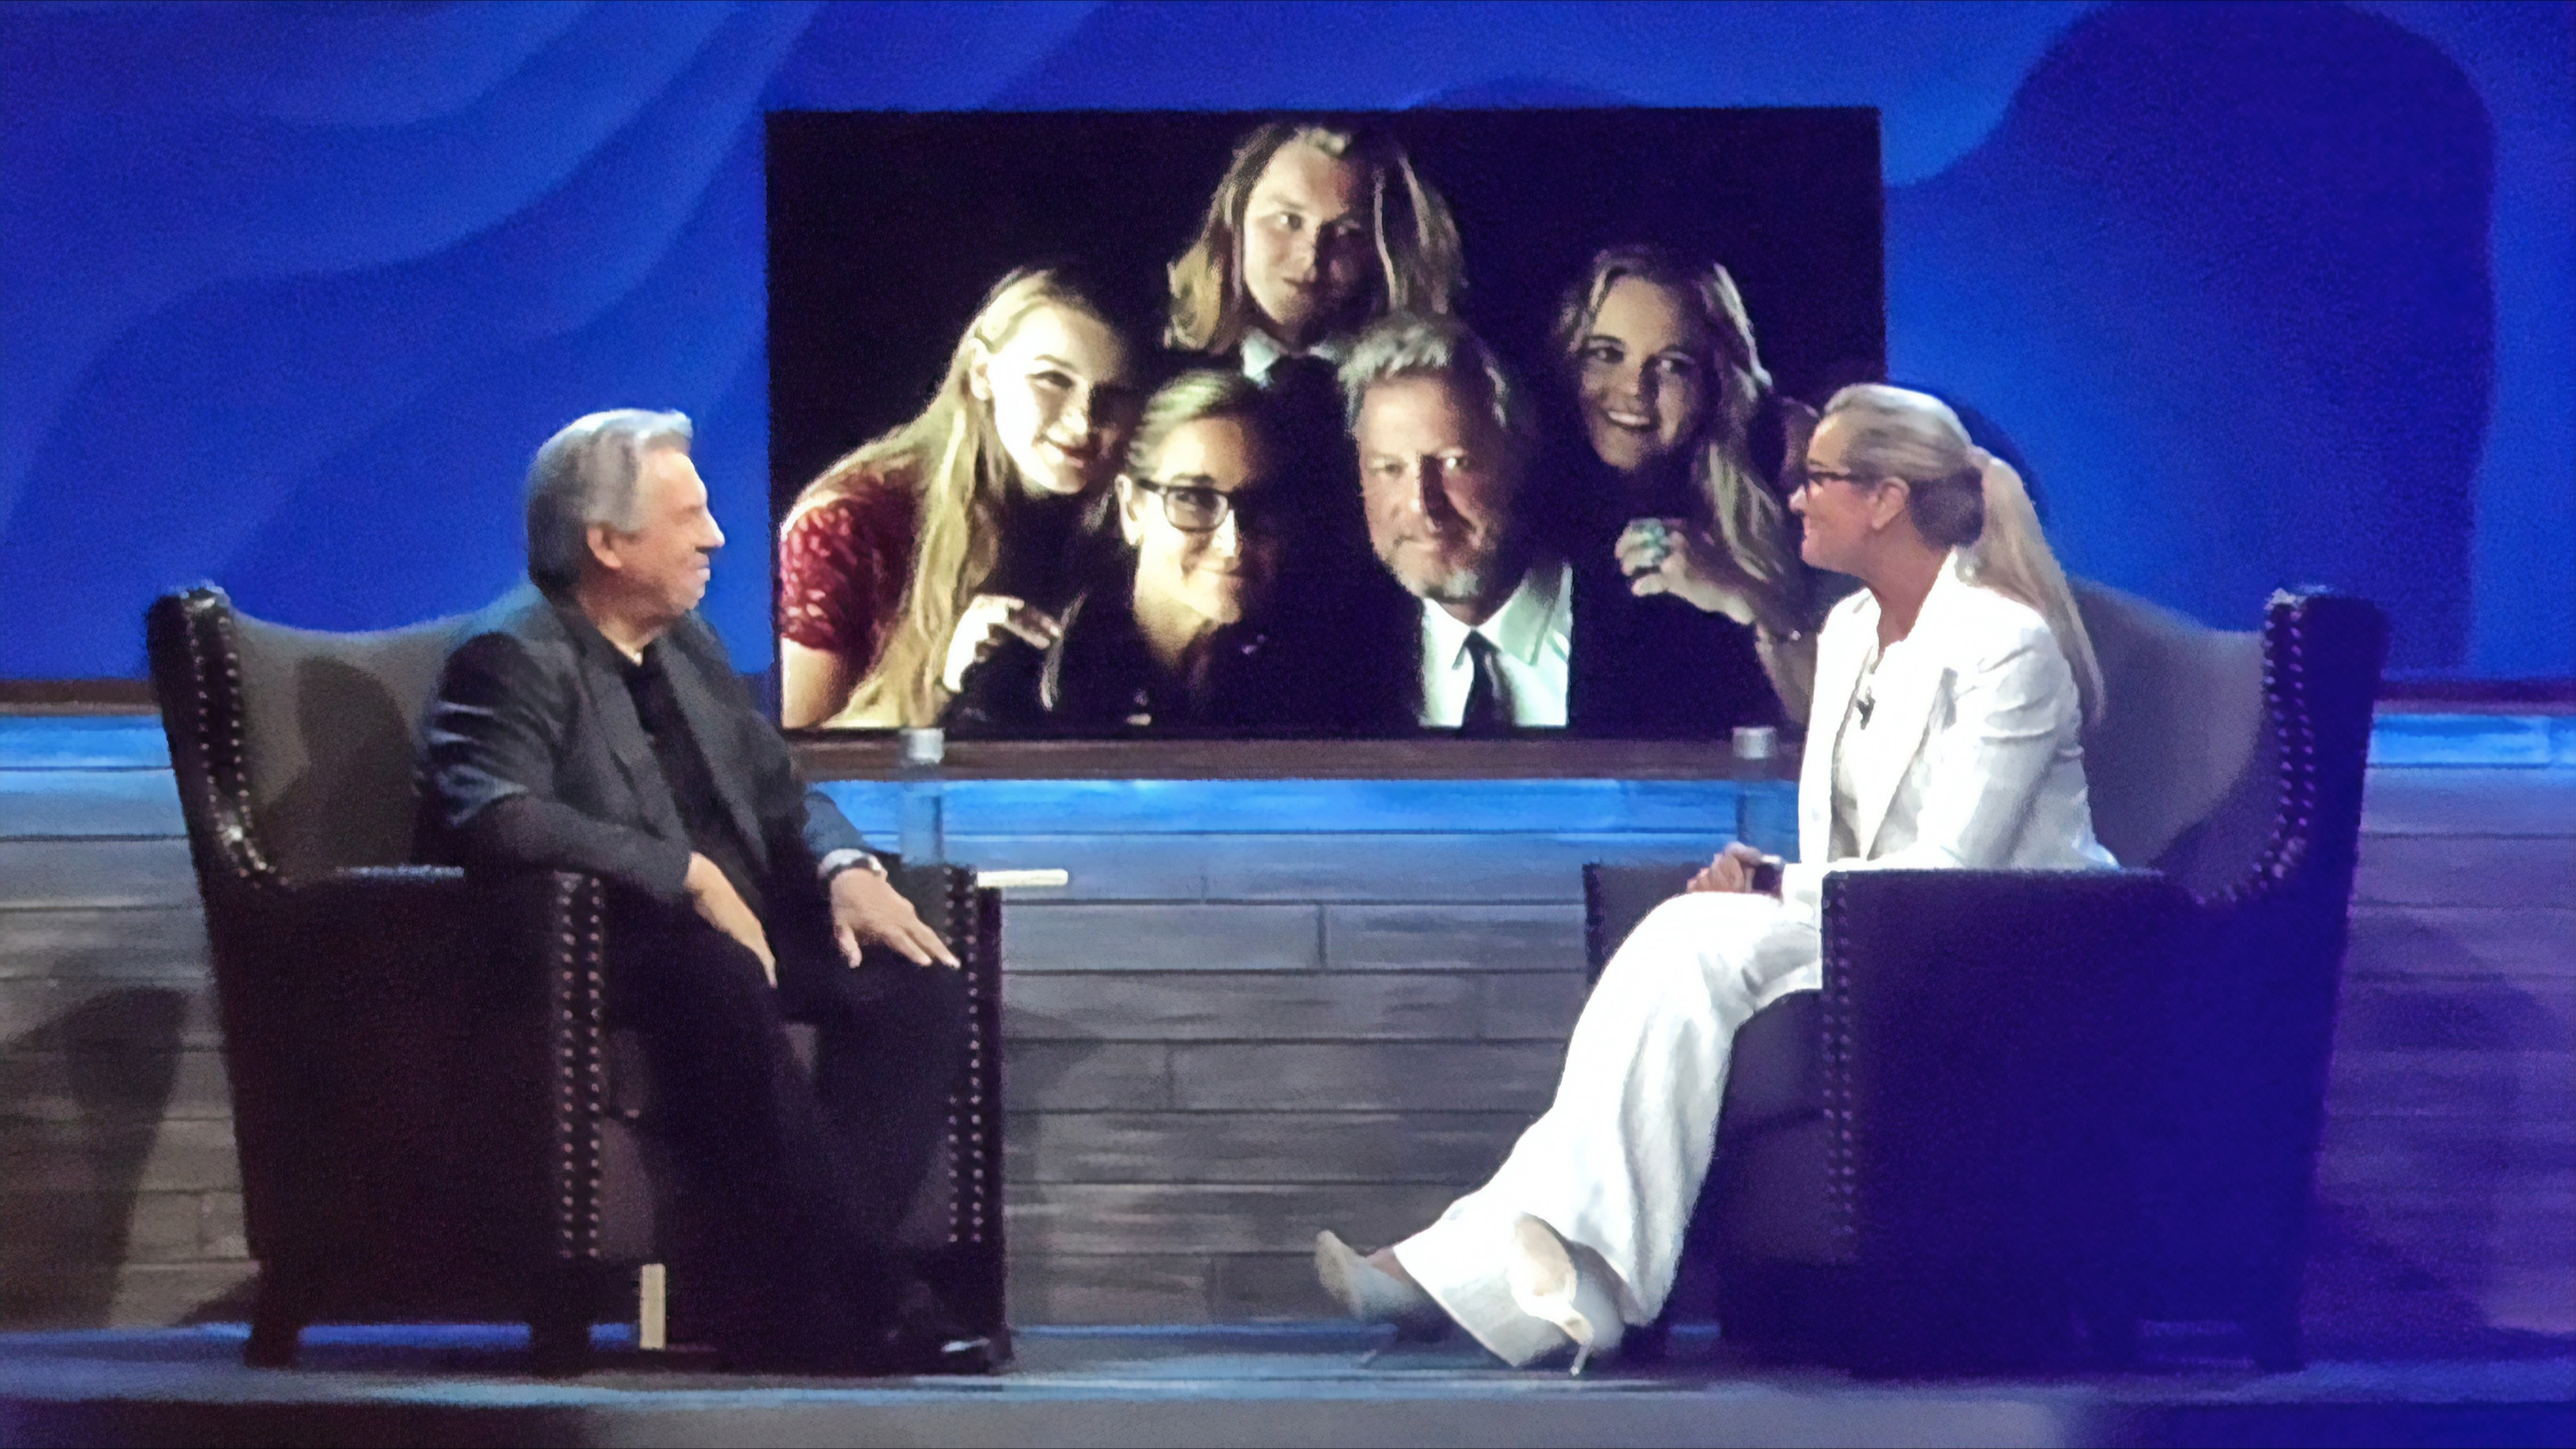 Angela Ahrendts discusses intuitive leadership, challenges of building timeless brands, more in Global Leadership Summit interview